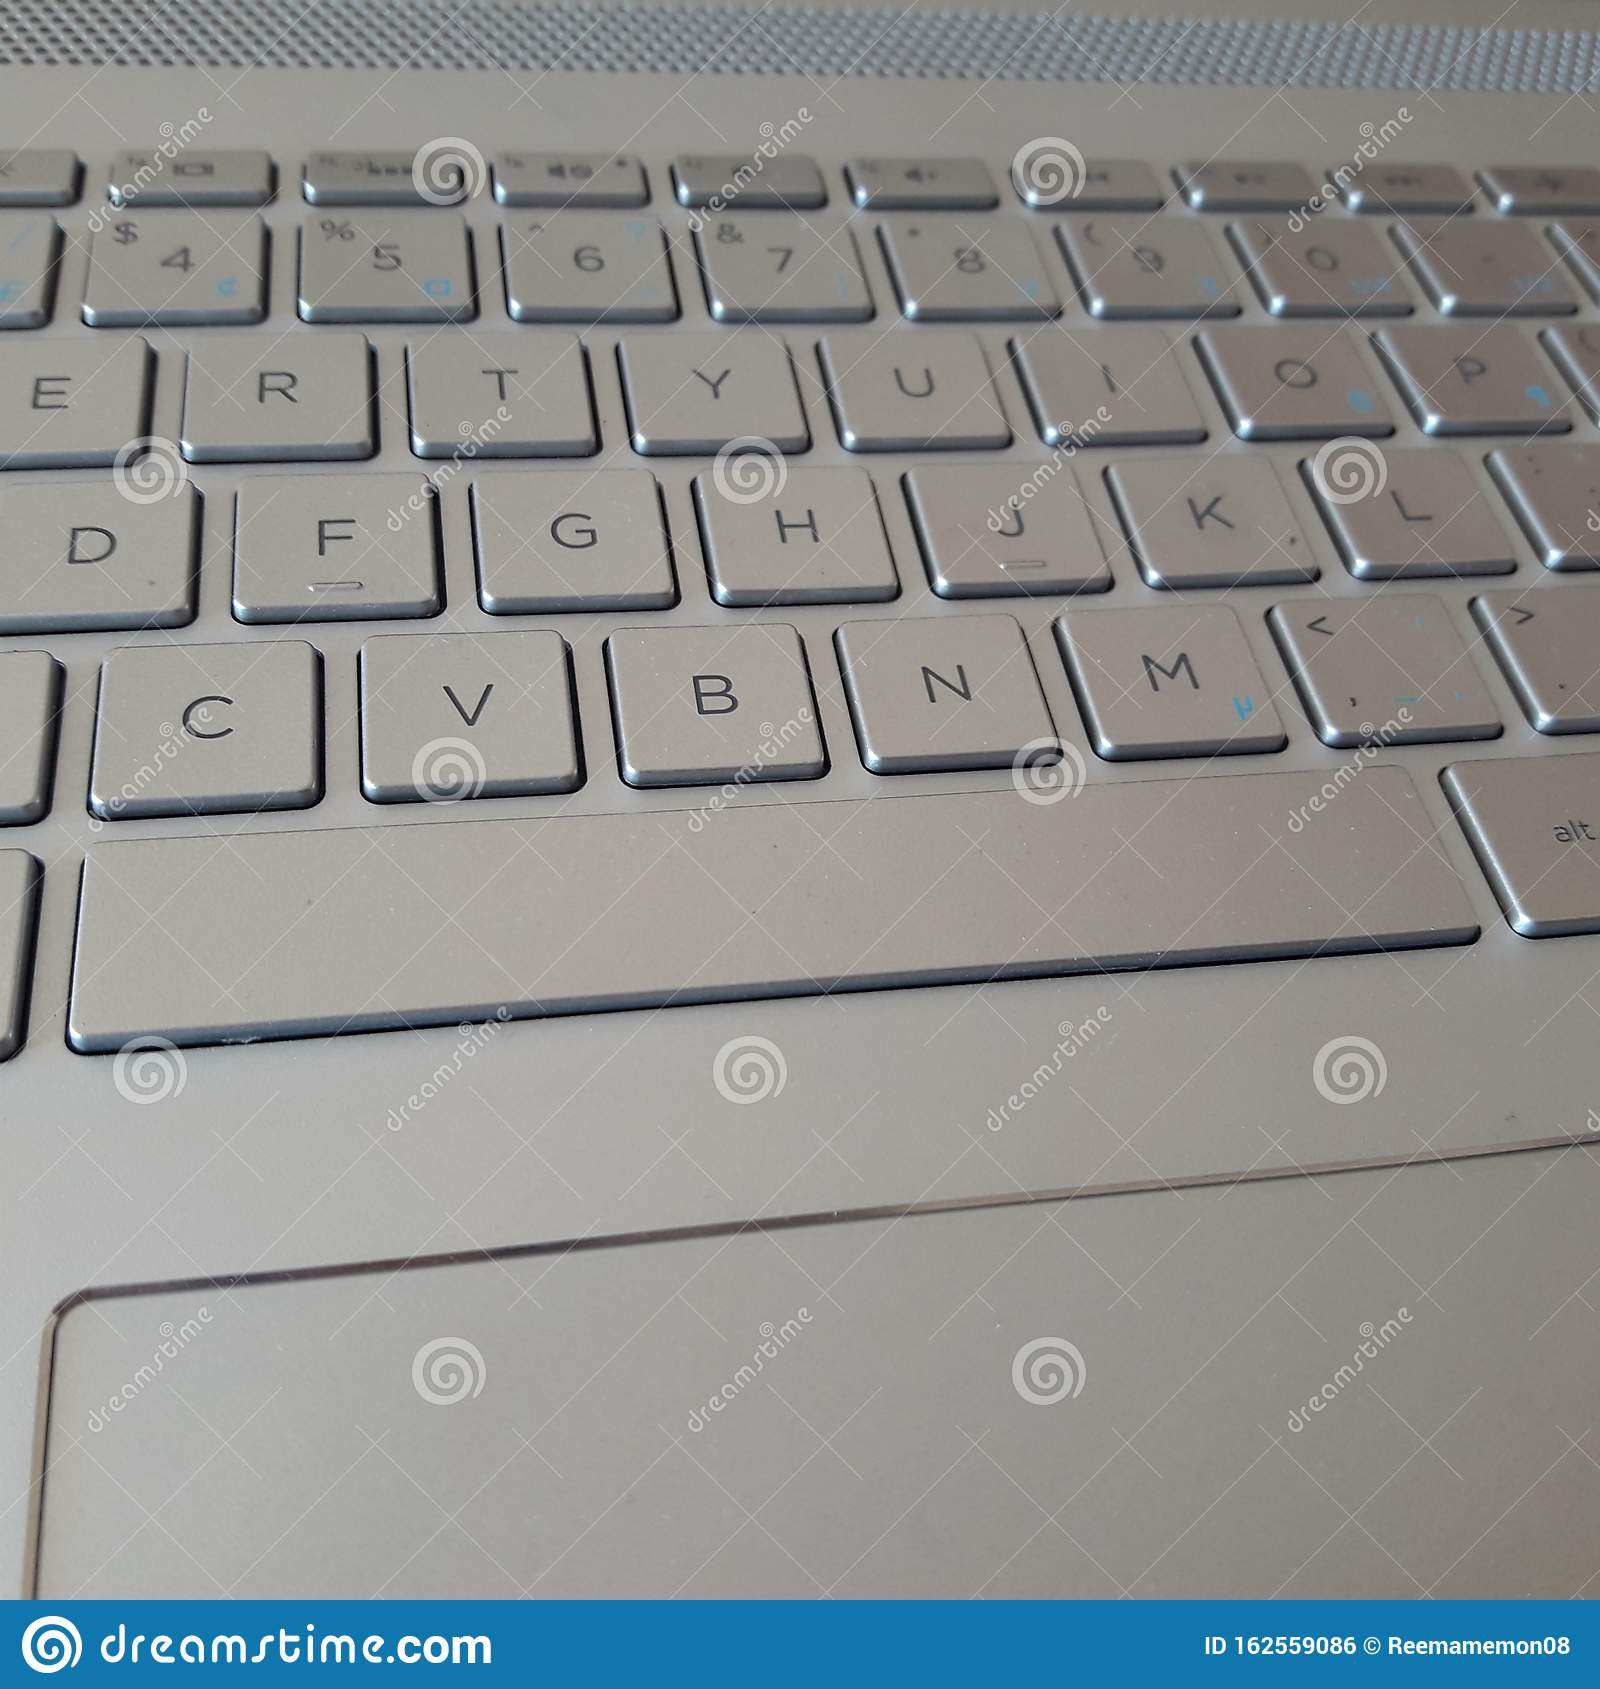 Laptop Keyboard Background Wallpaper Sliver Color Stock Photo Image Of Learn Teen 162559086